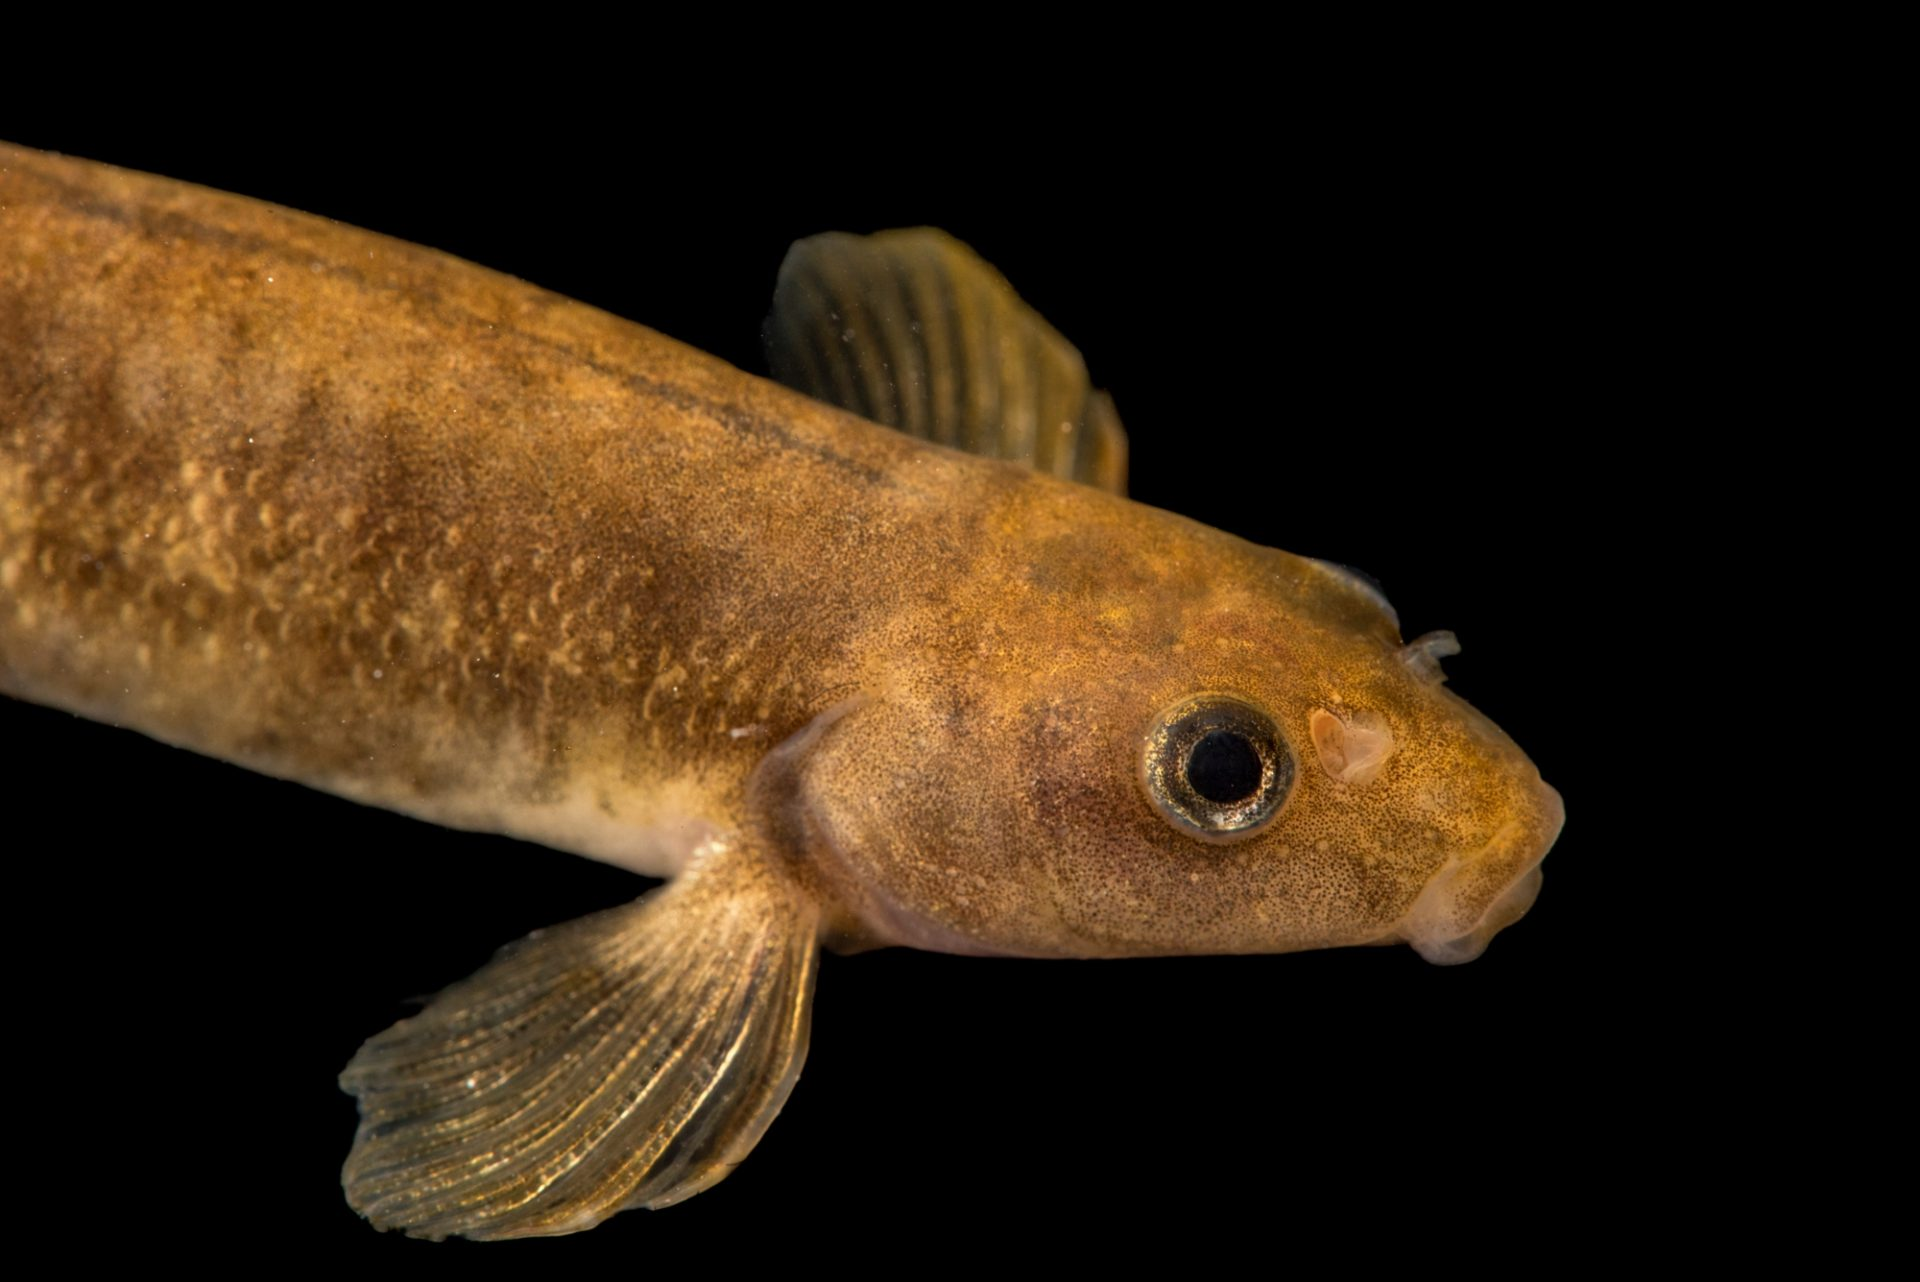 Photo: Loach minnow (Rhinichthys cobitis) at the Aquatic Research and Conservation Center.